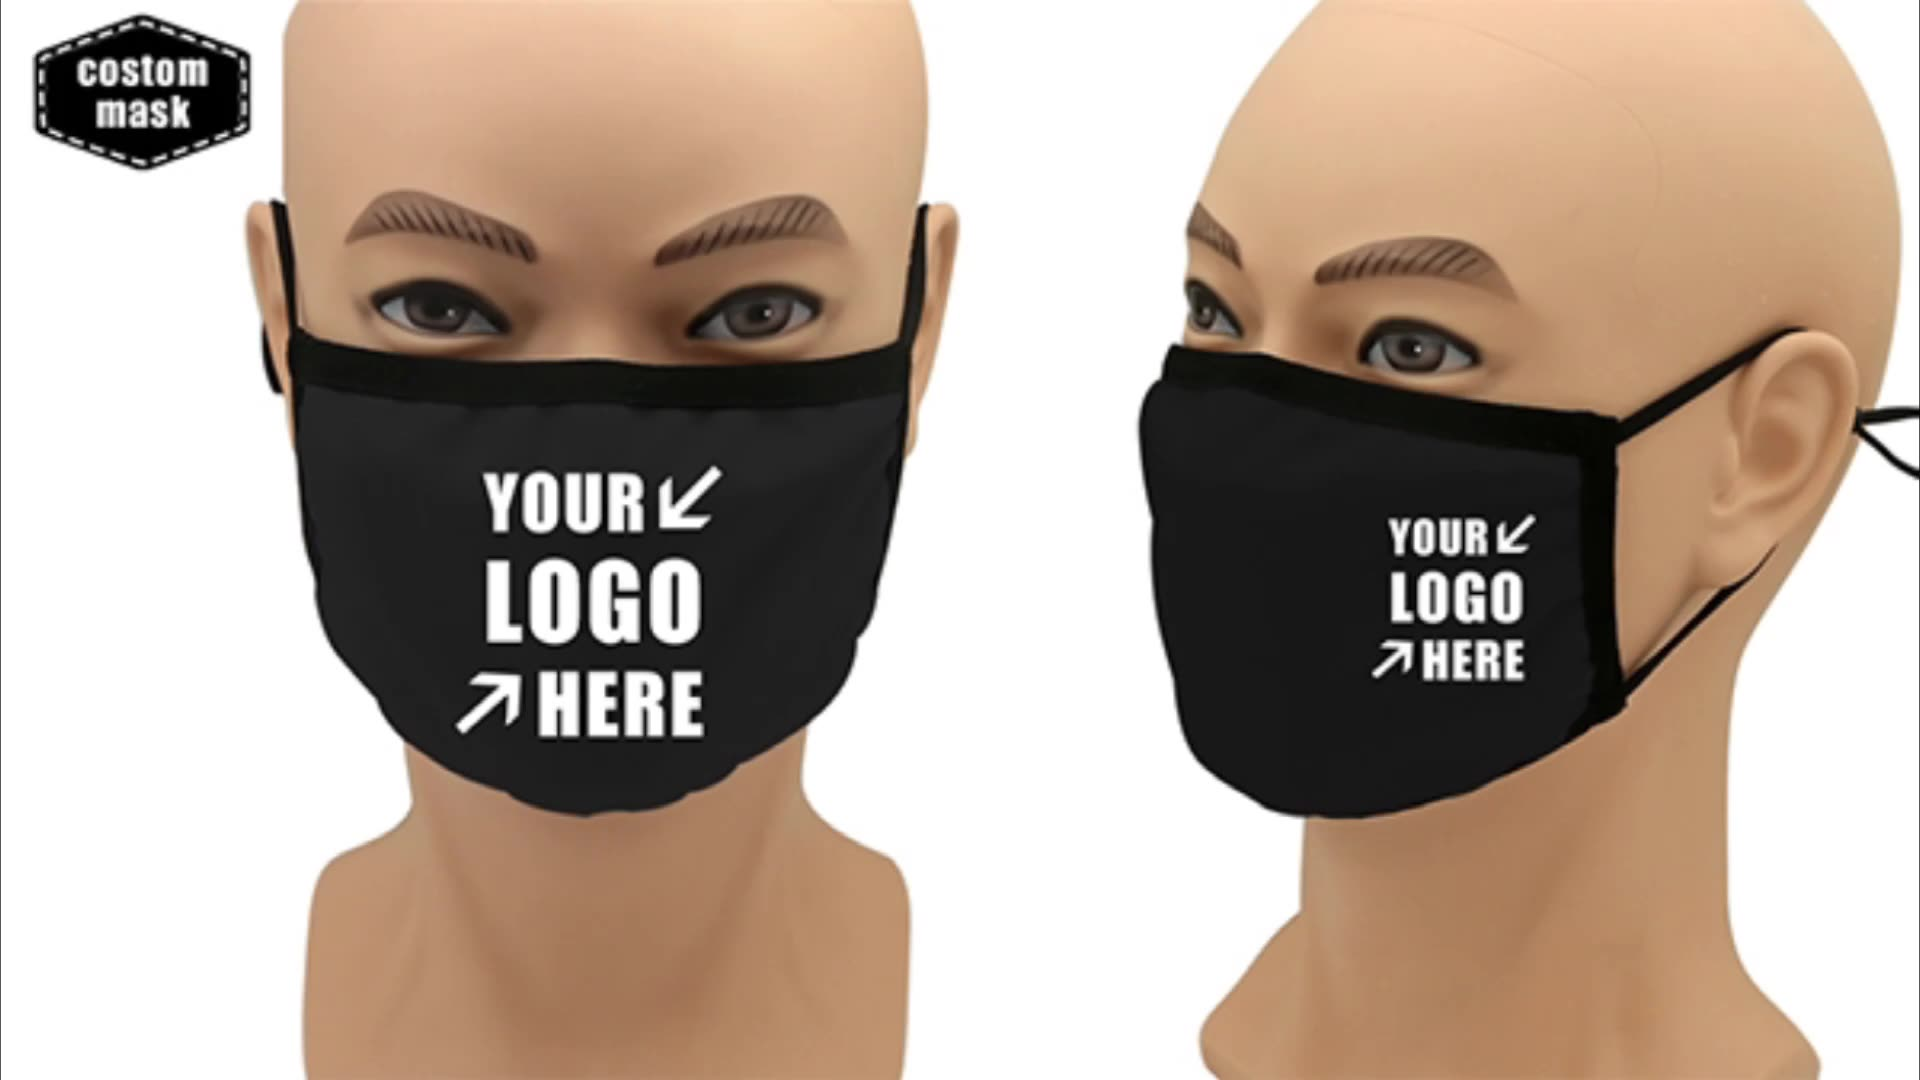 2020 New Developed Customized Sublimation Blank Mask With Black Wrapping Strip For Christmas Party Masks